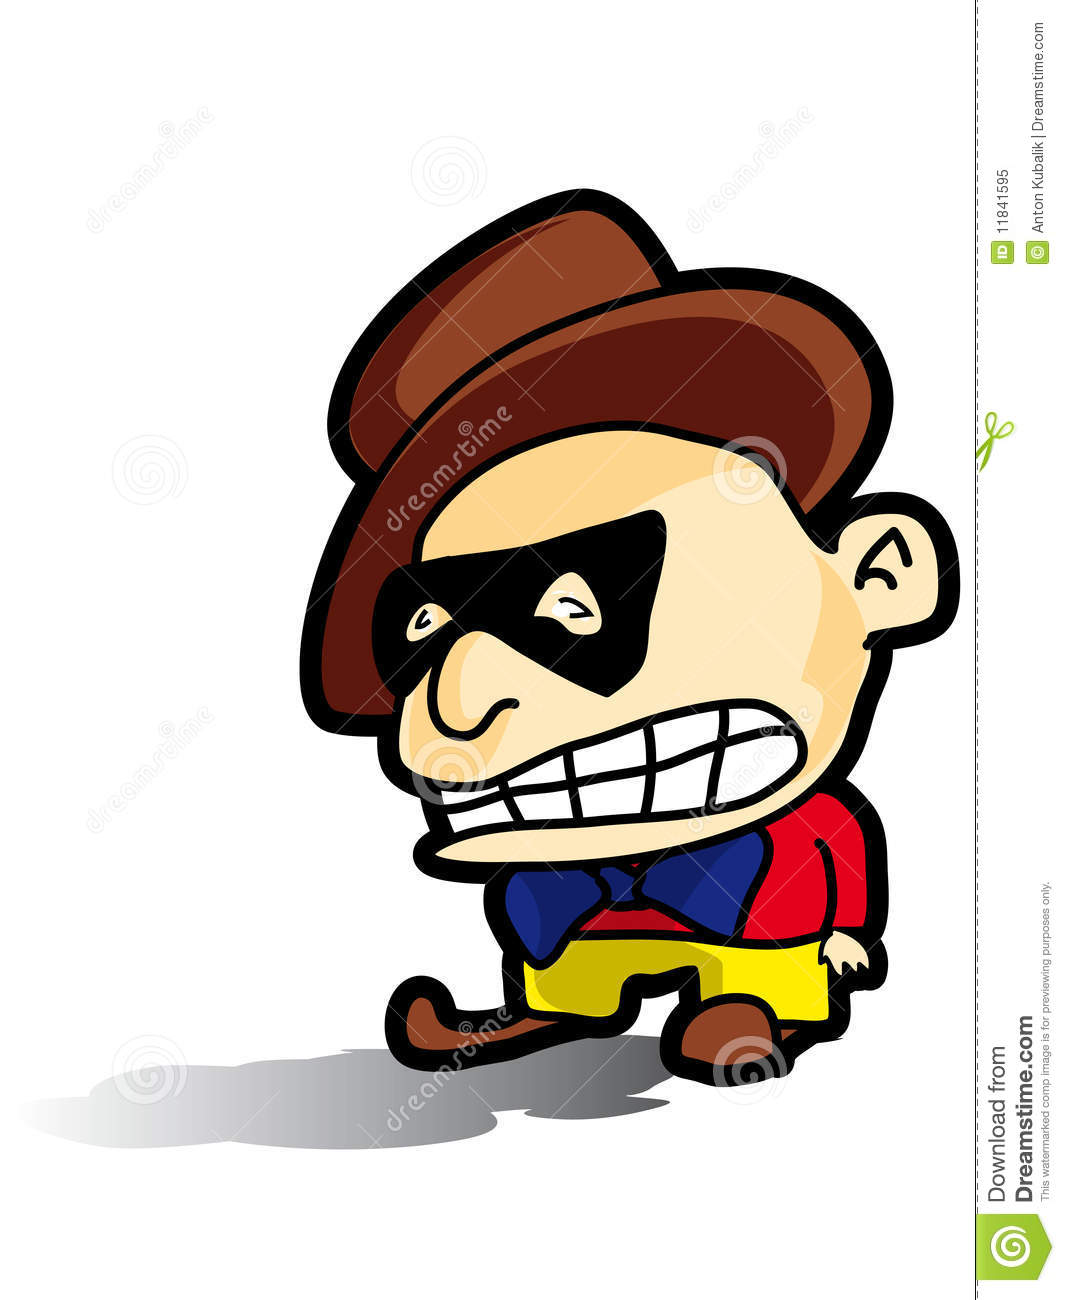 Cartoon Characters Gangster : Gangster royalty free stock photo image